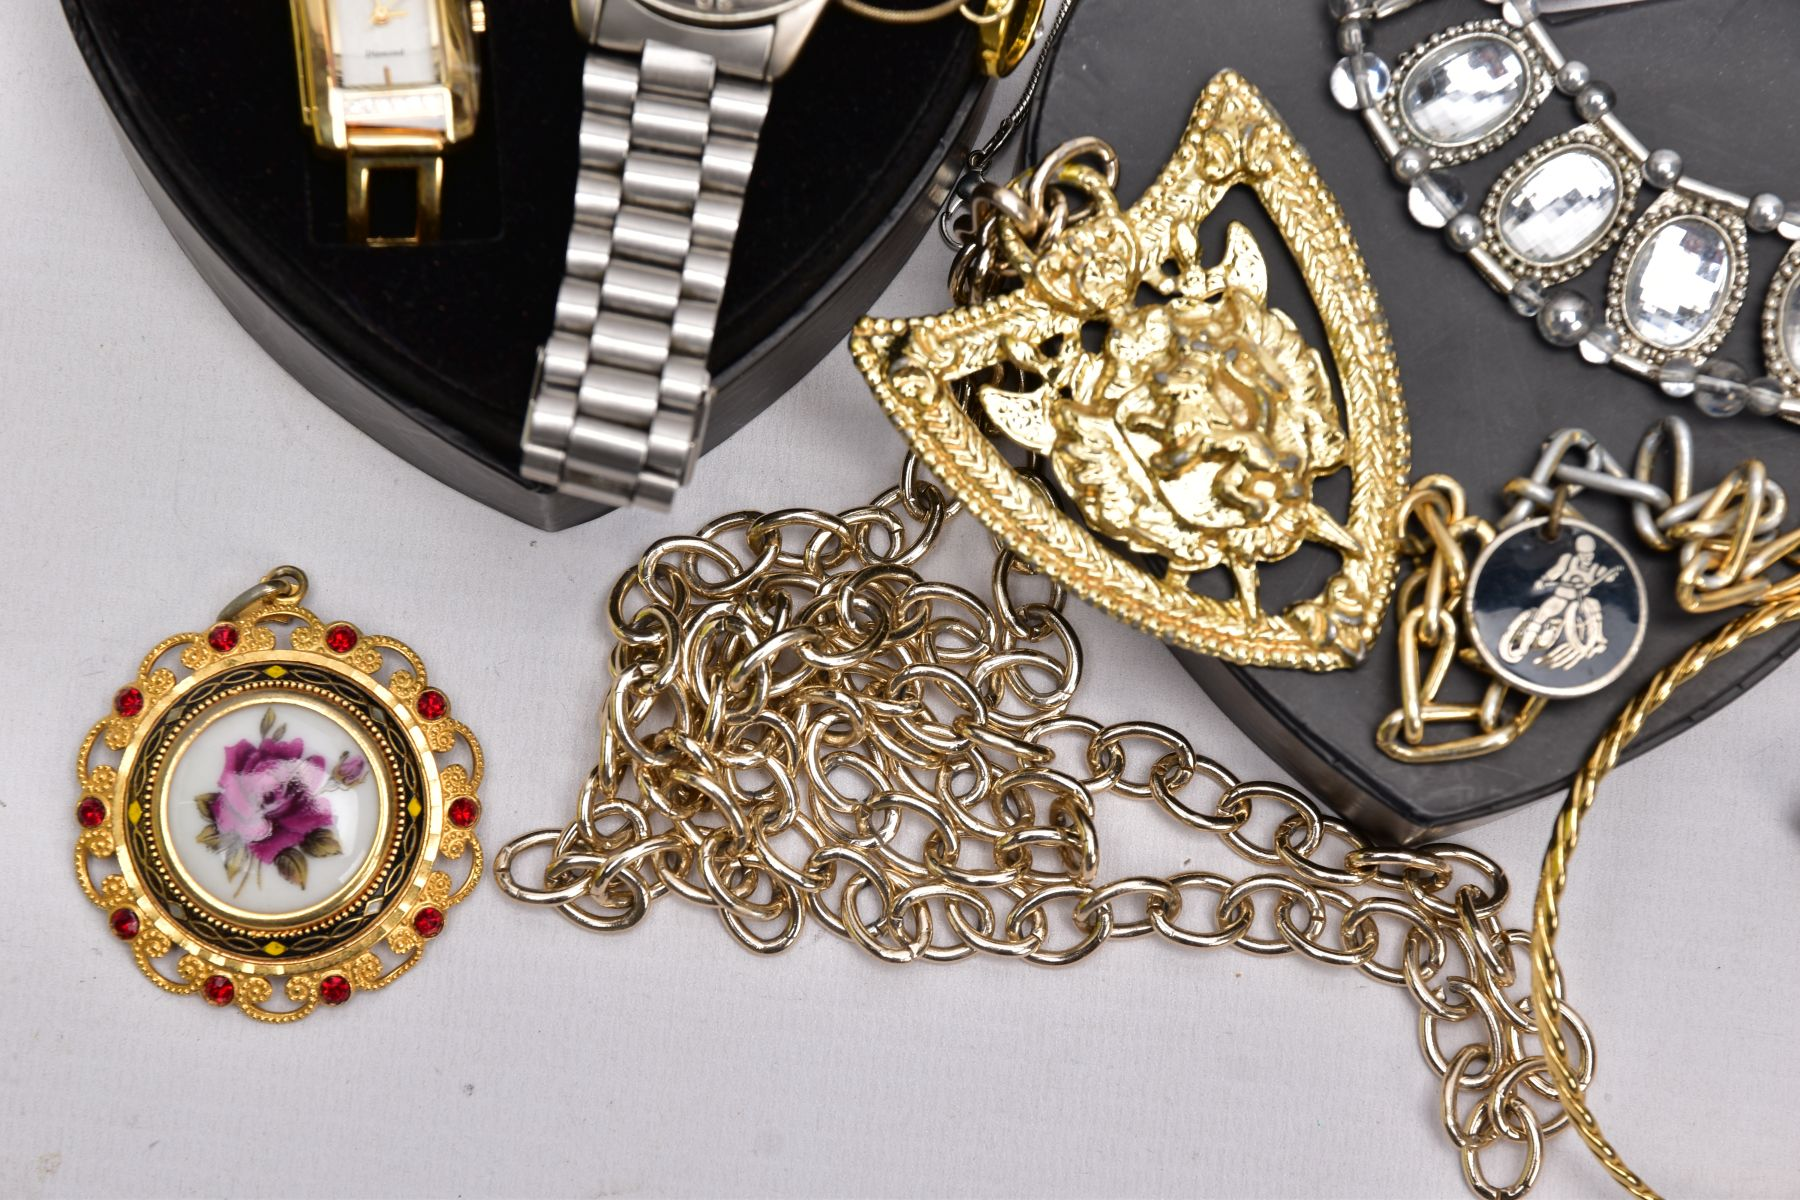 A BOX OF ASSORTED ITEMS, to include costume jewellery such as yellow and white metal necklaces, - Image 6 of 6